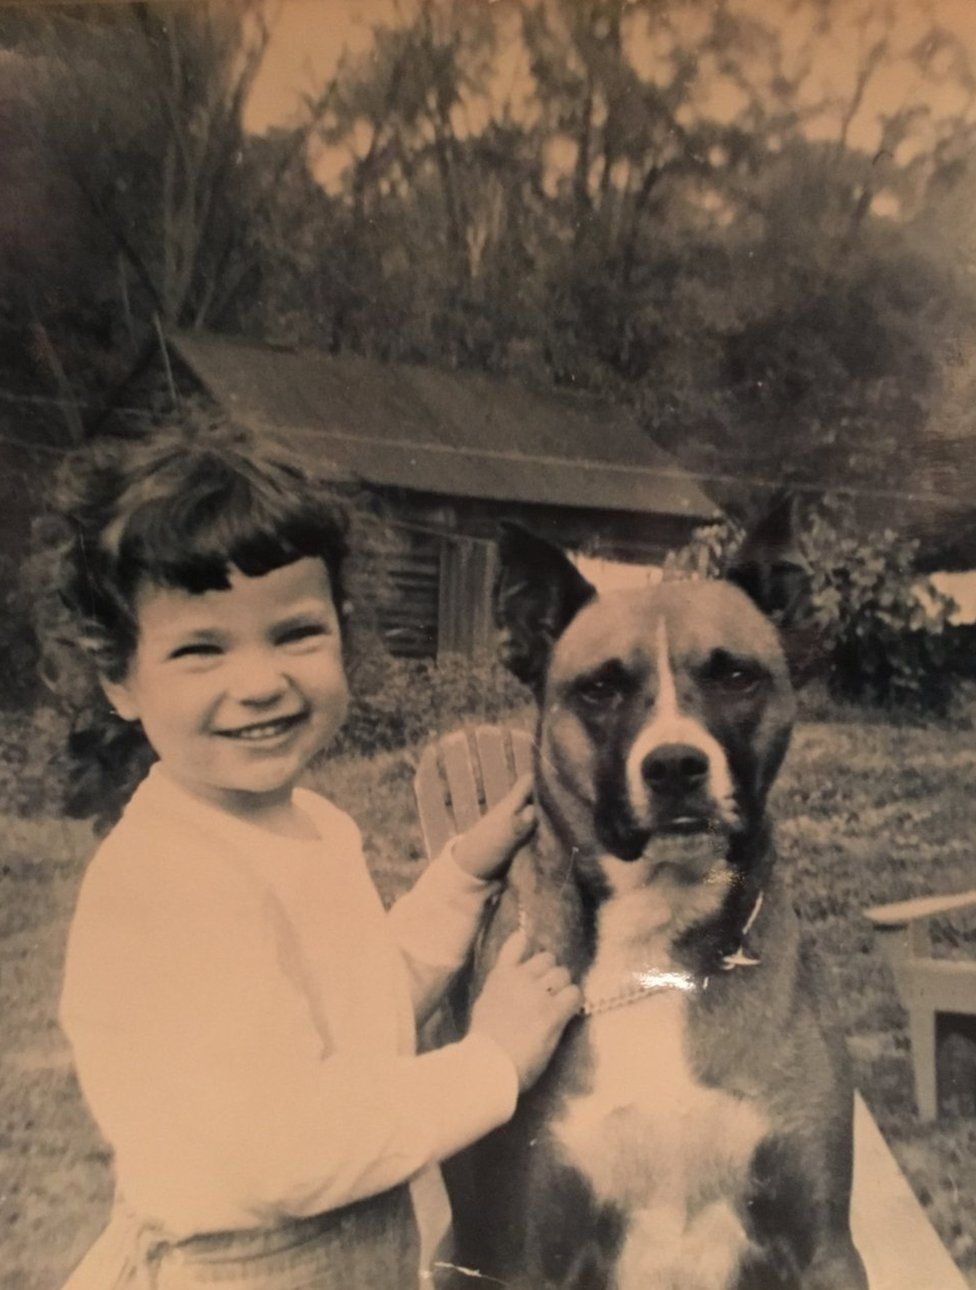 Cat Hulbert as a young girl with canine friend